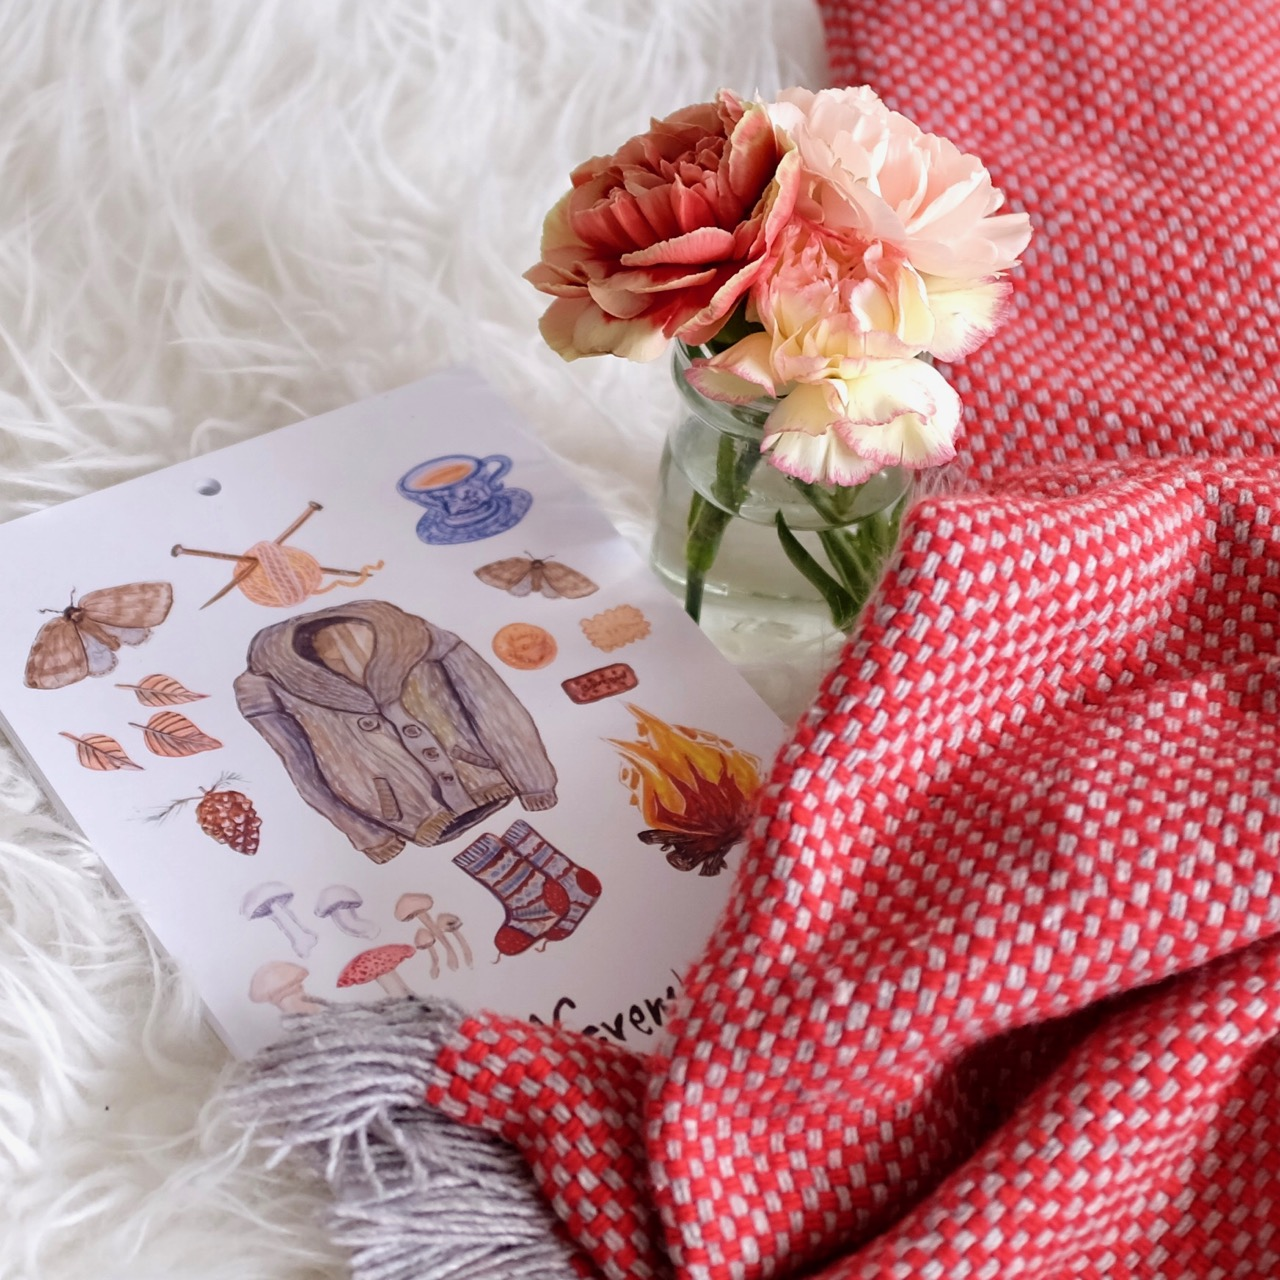 How to create a calm and cosy home this autumn